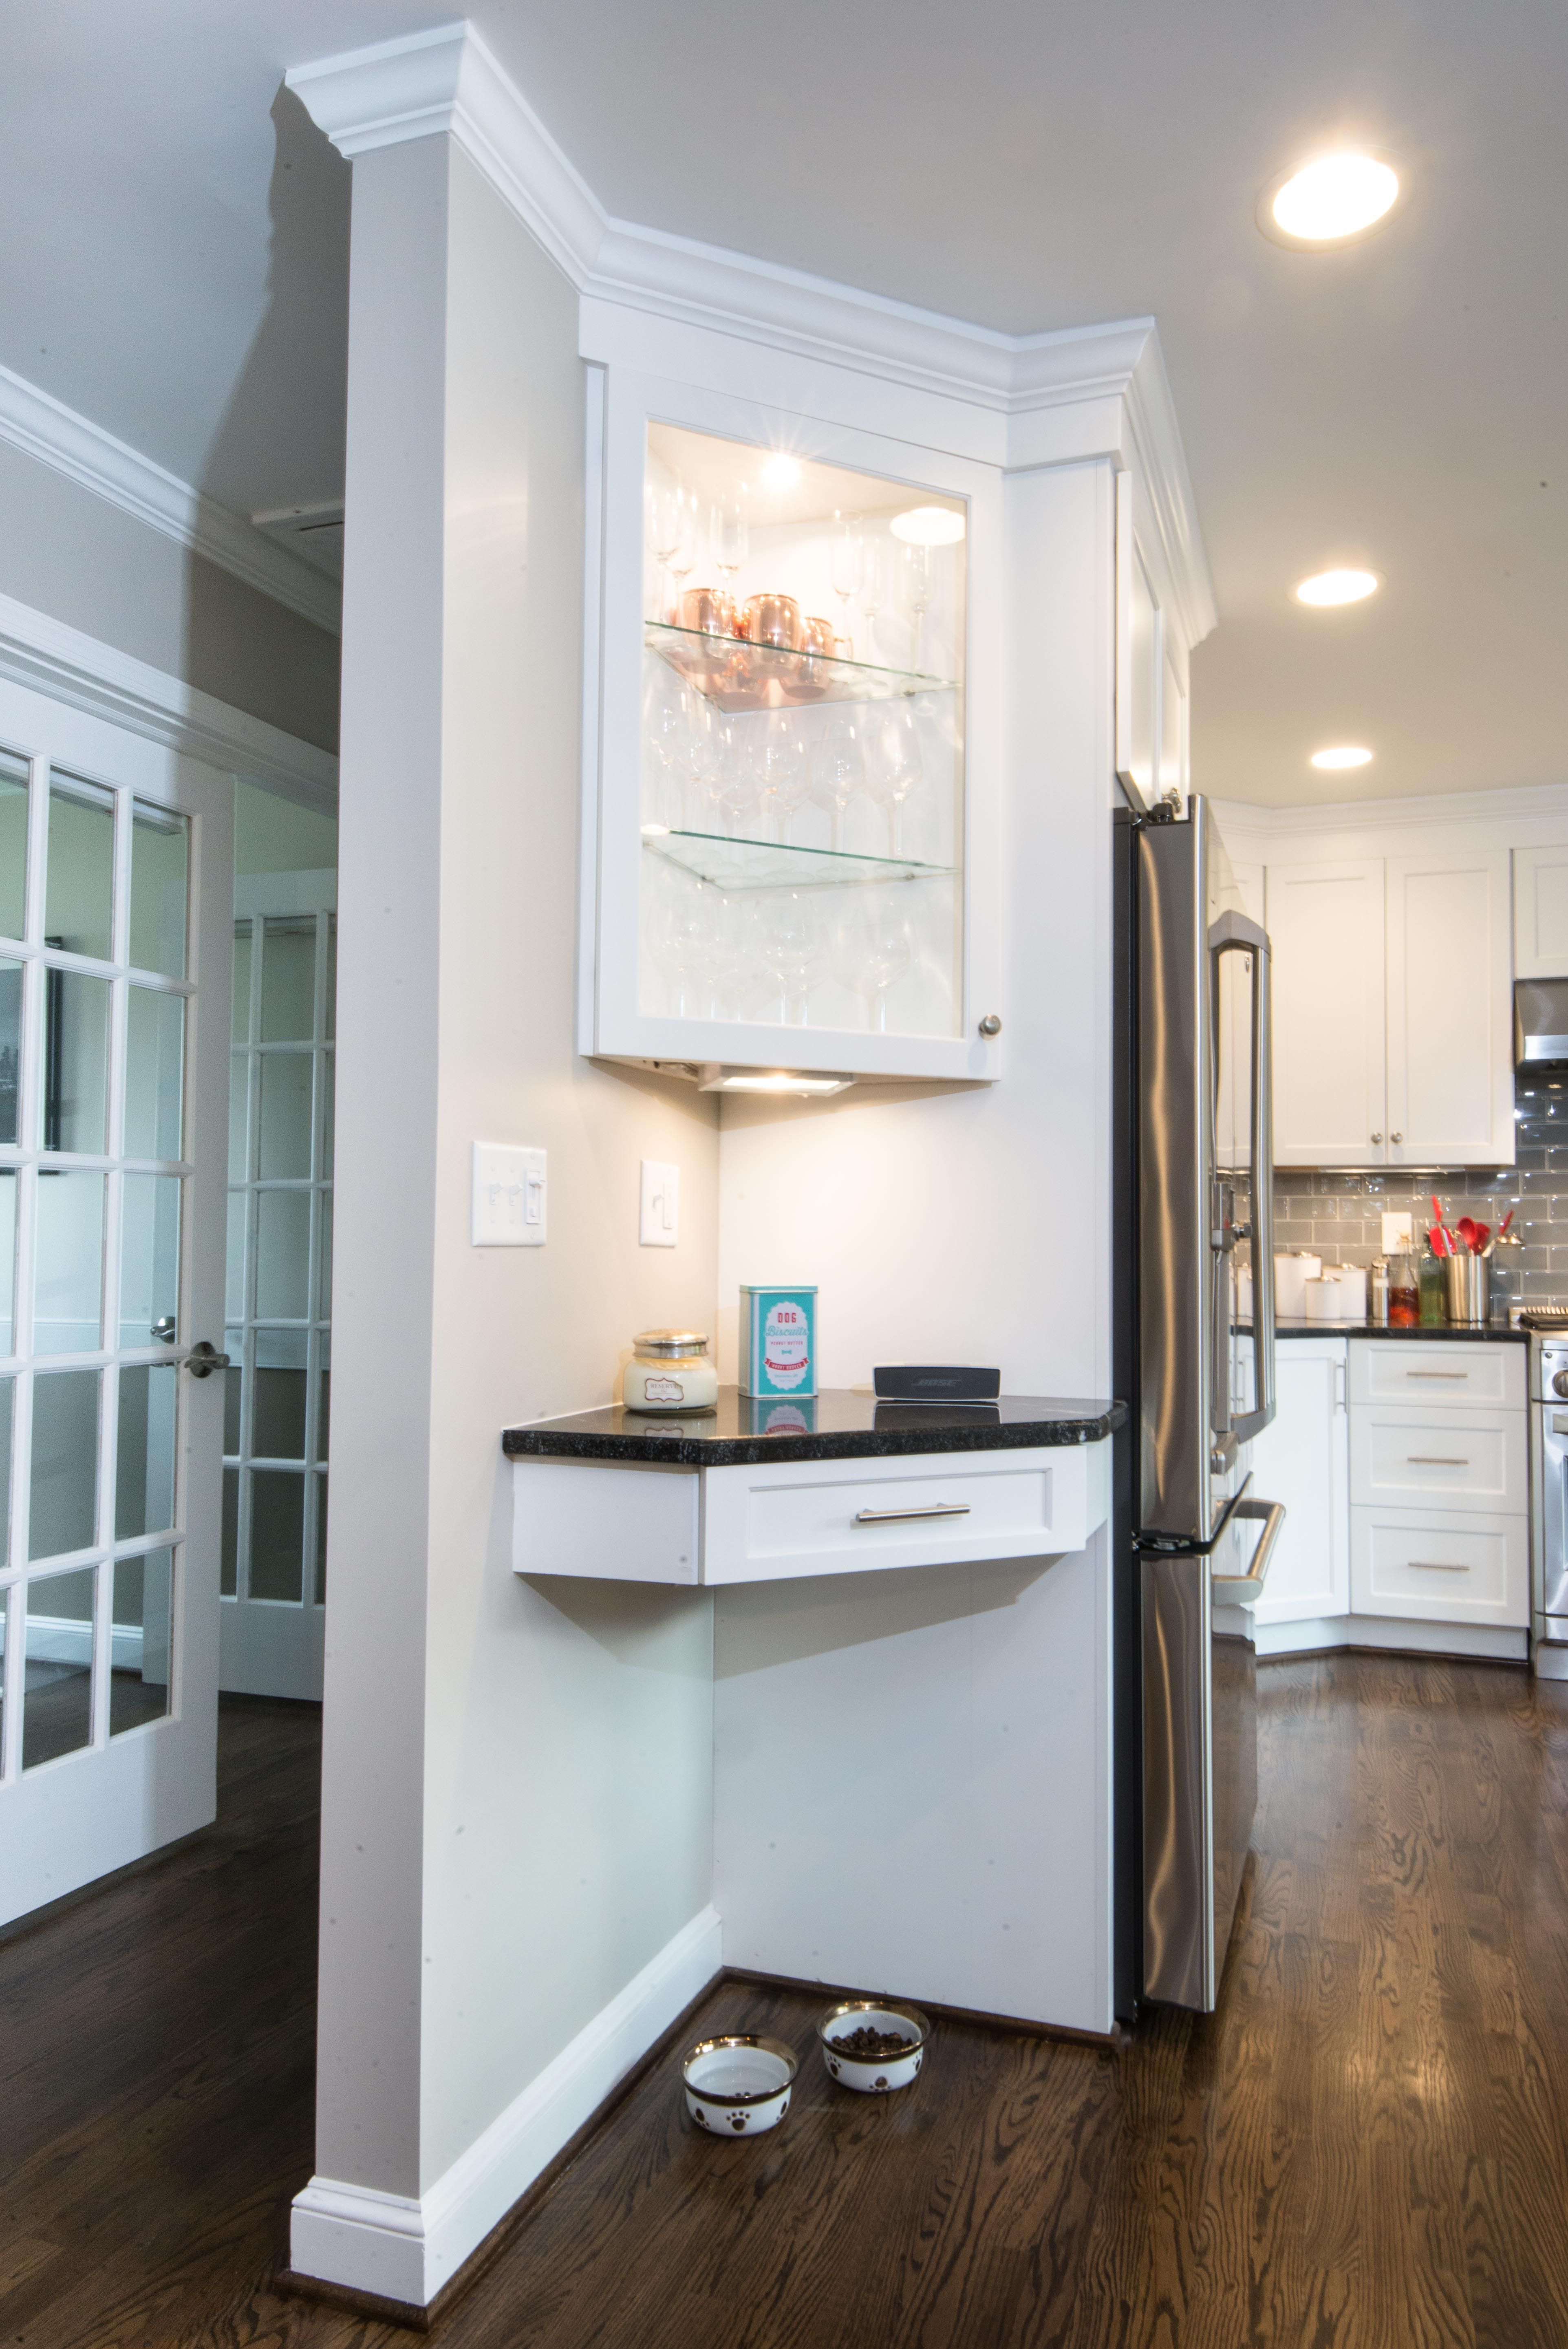 This glass corner cabinet makes a beautiful showcase as you enter the kitchen. The drawer below the landing space is equipped as a charging station for phones, tablets, laptops, iPods, etc. The space below is the perfect niche for the dogs food and water bowls.